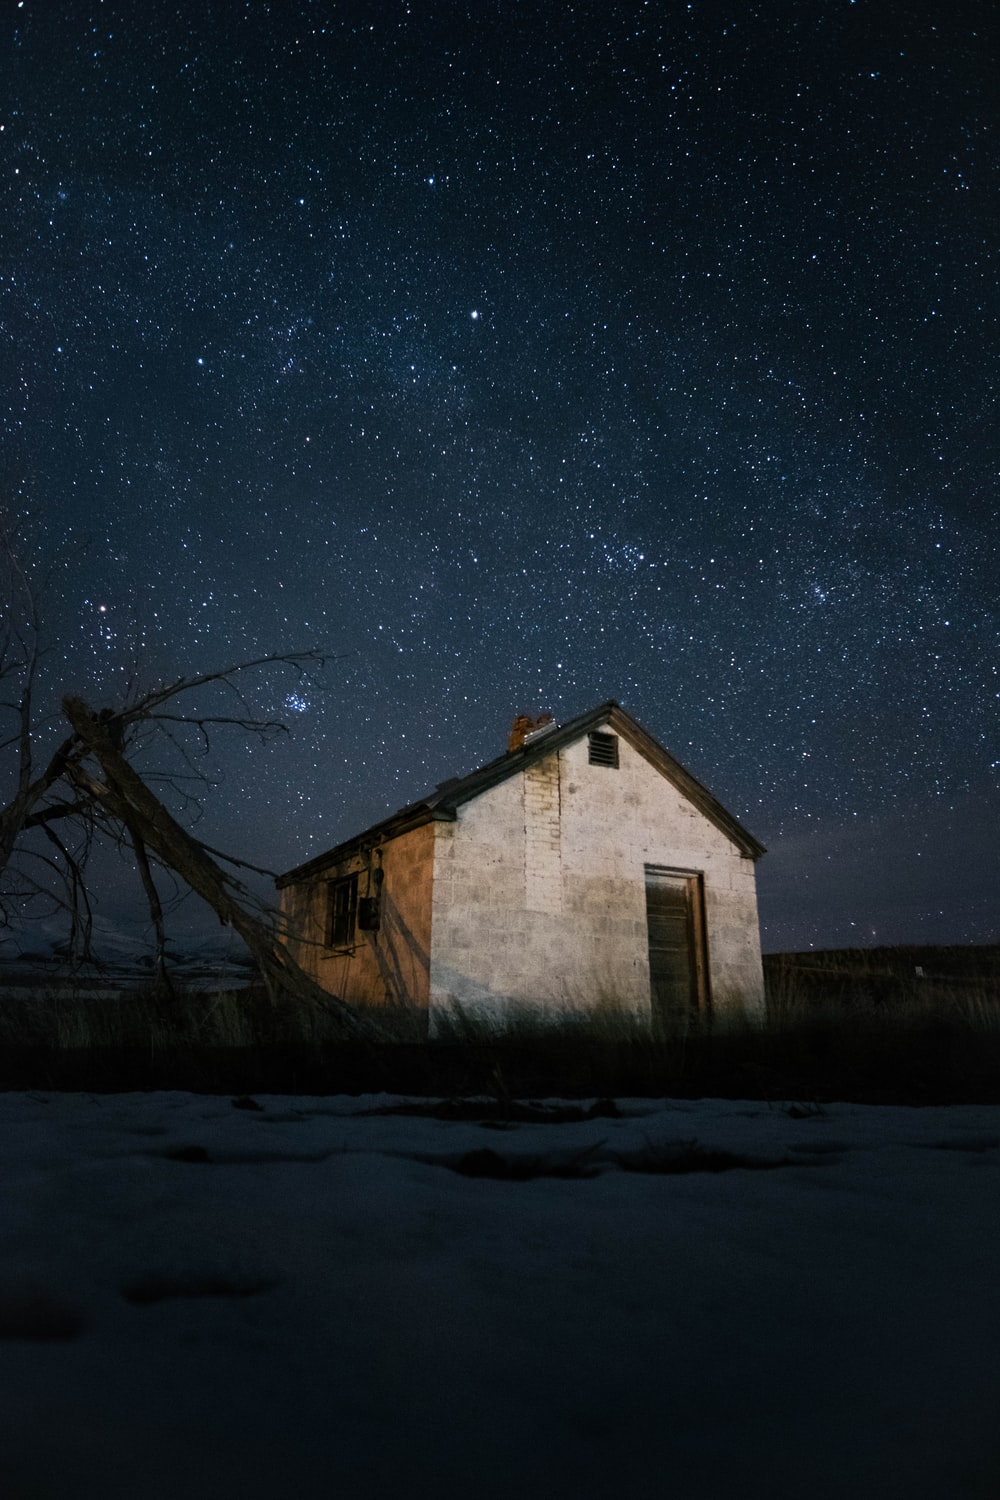 house under clear sky full of stars at night